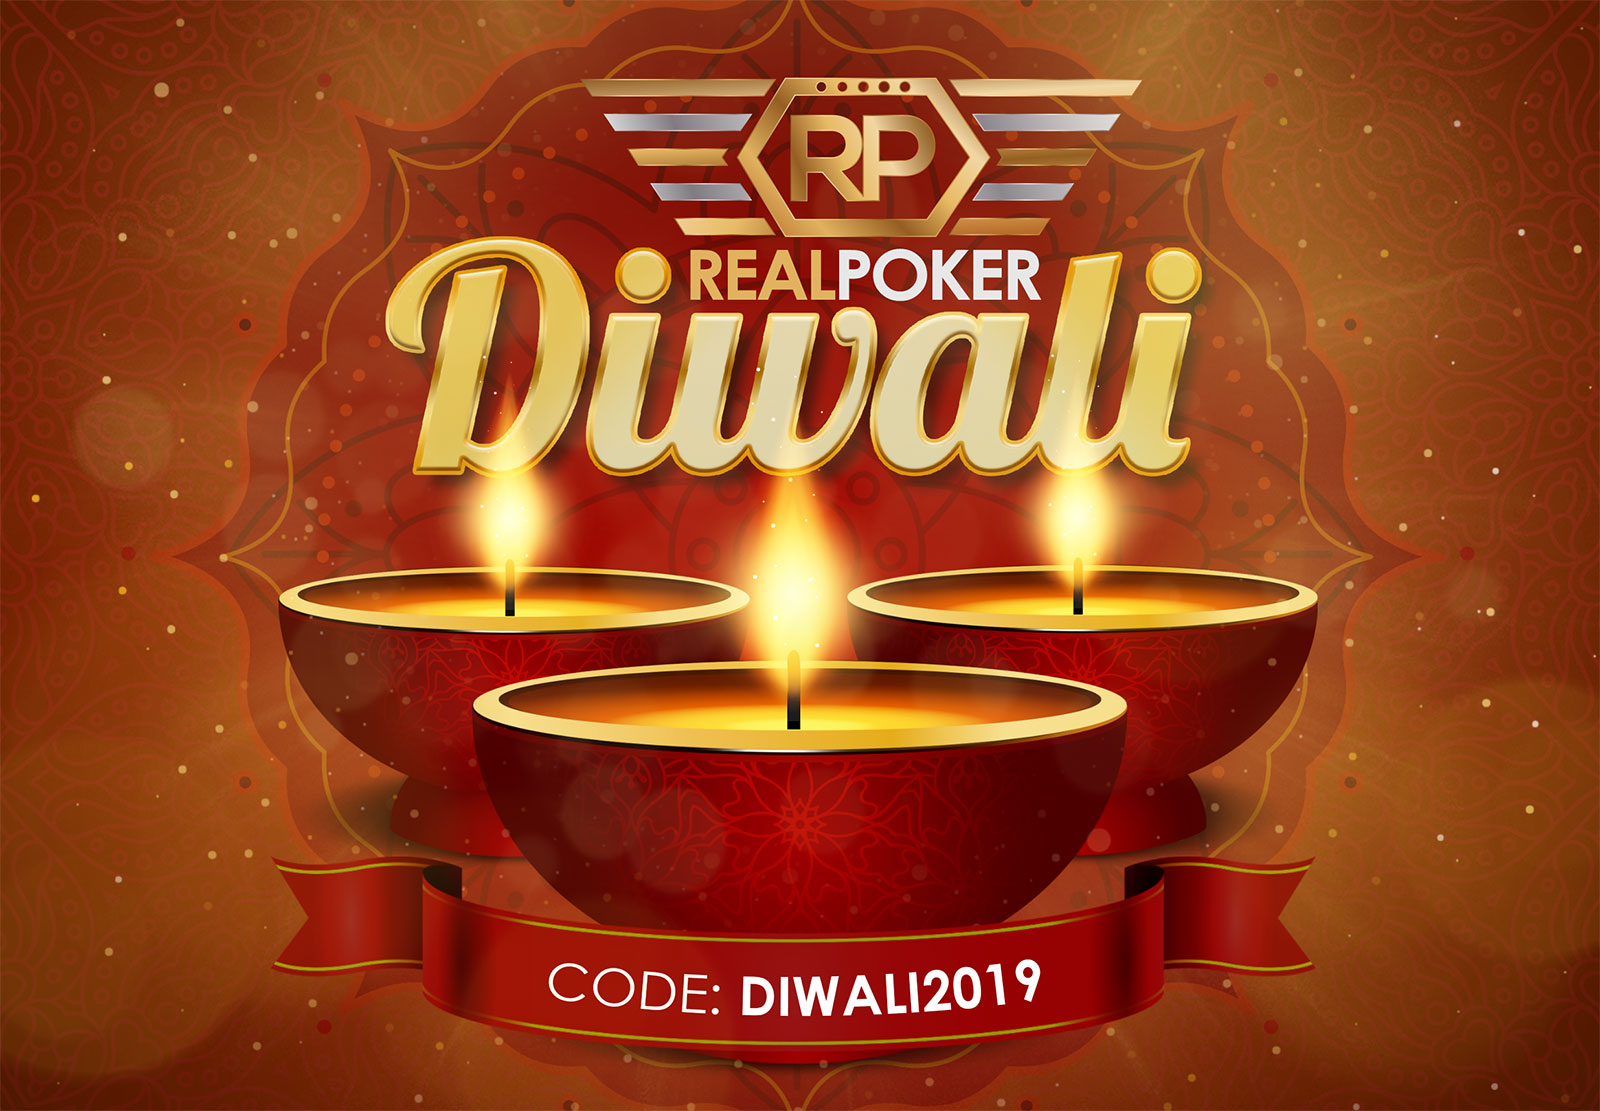 diwali coupon-code-offer